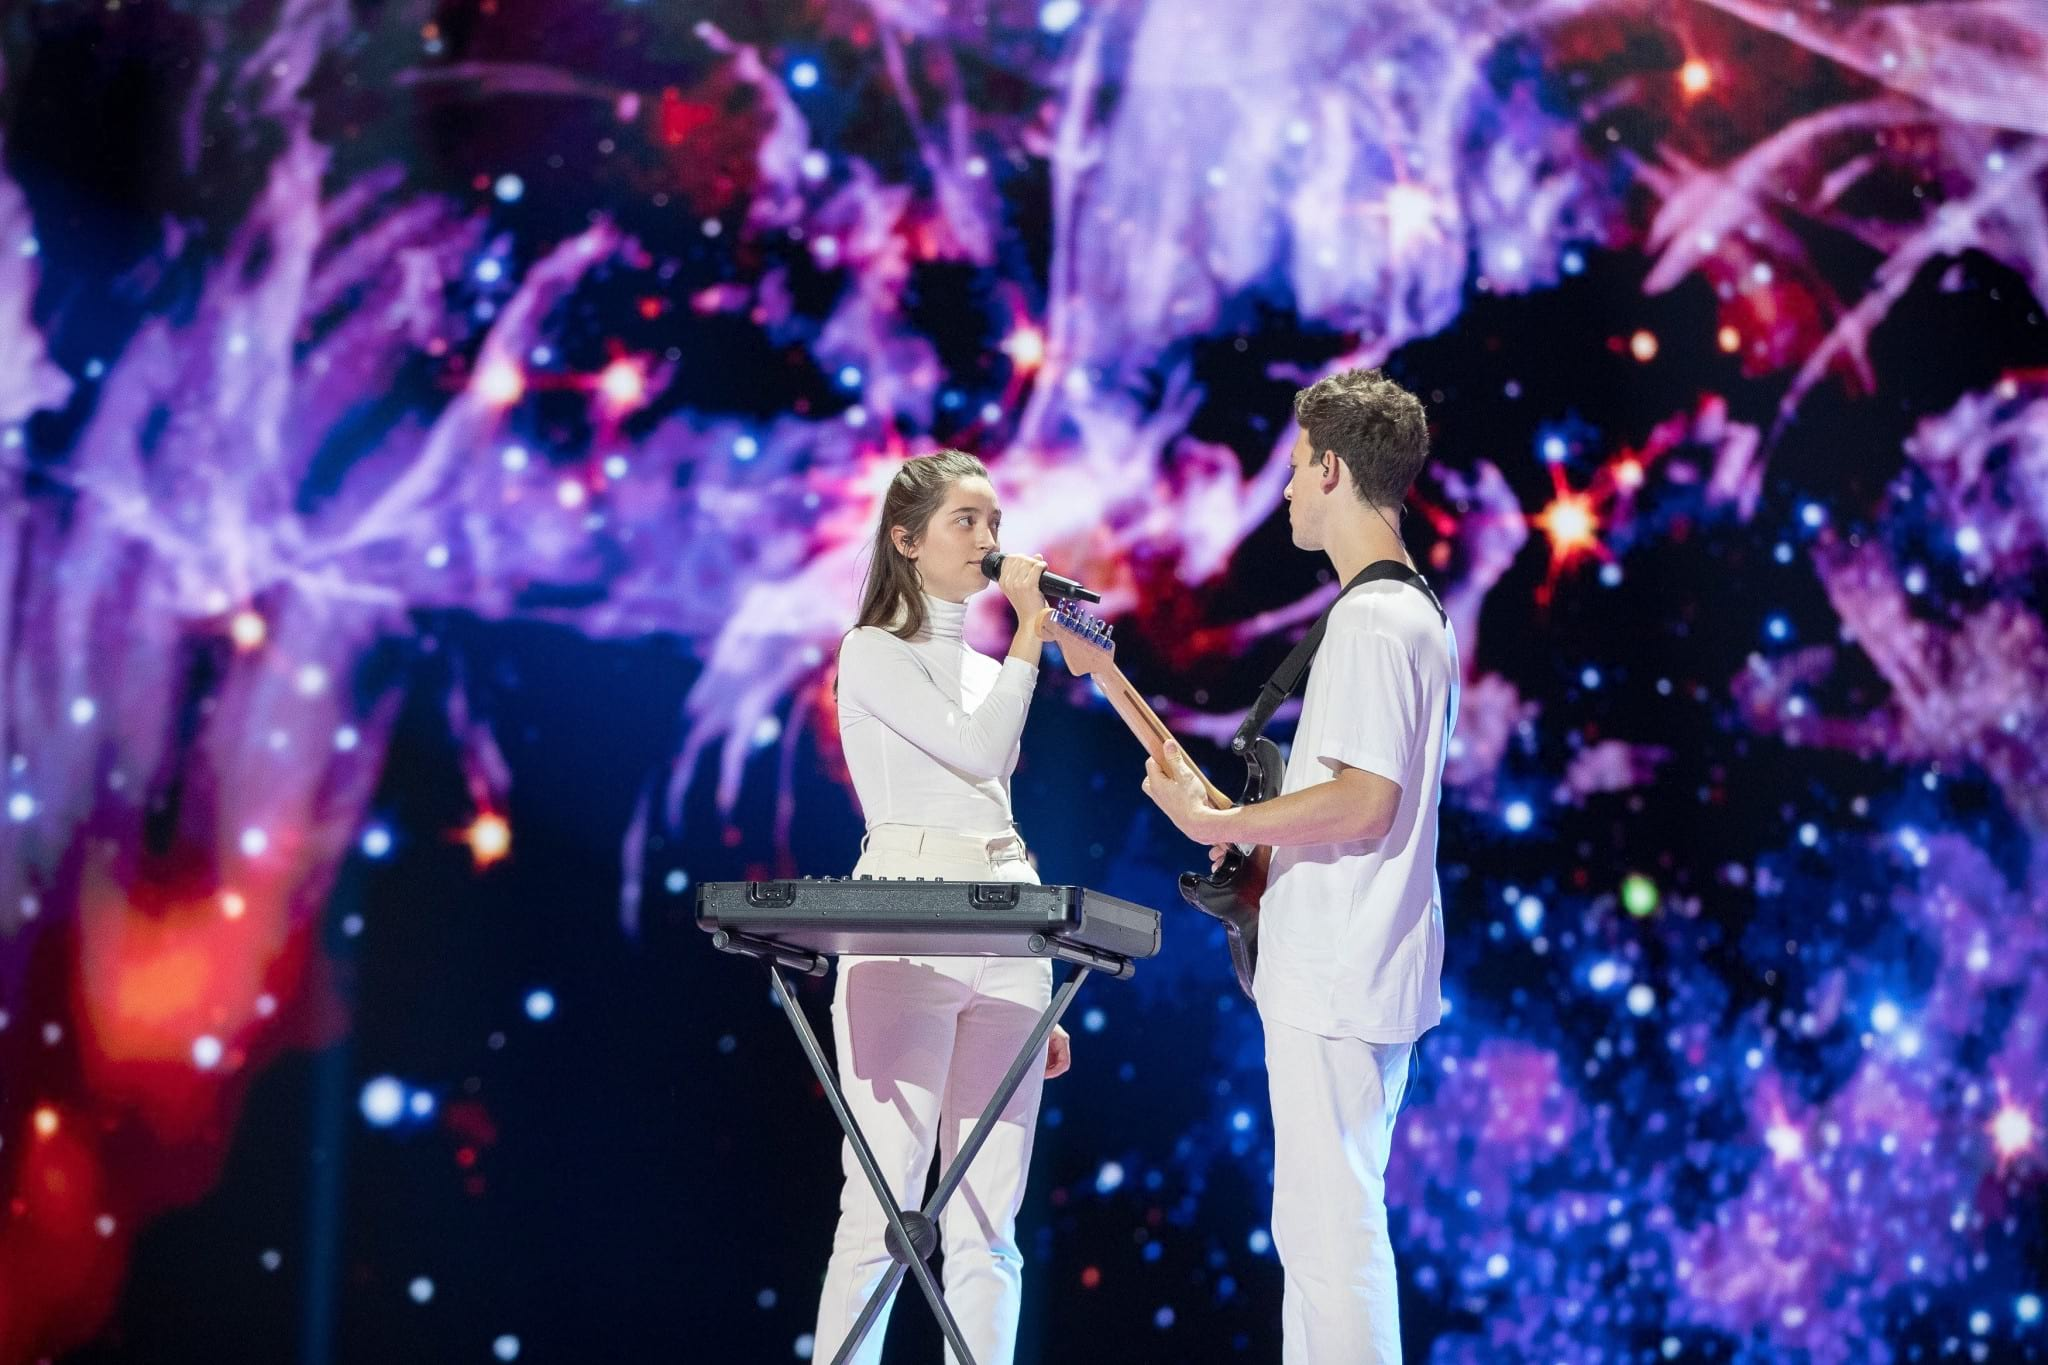 Slovenia:  Zala Kralj & Gašper Šantl rehearse first time on stage